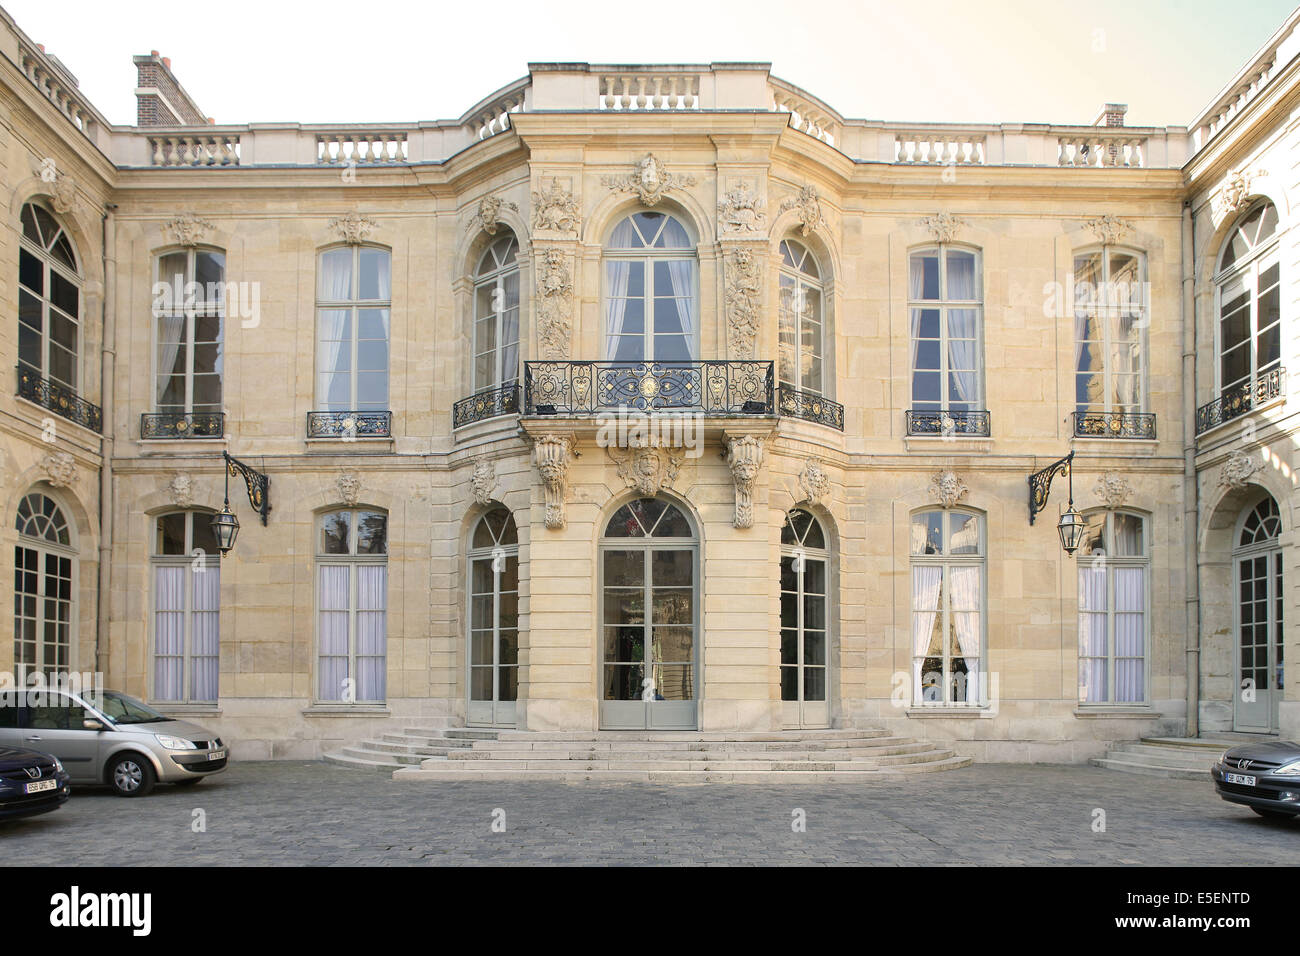 france paris 7e hotel particulier hotel de matignon 56 rue de stock photo 72239229 alamy. Black Bedroom Furniture Sets. Home Design Ideas